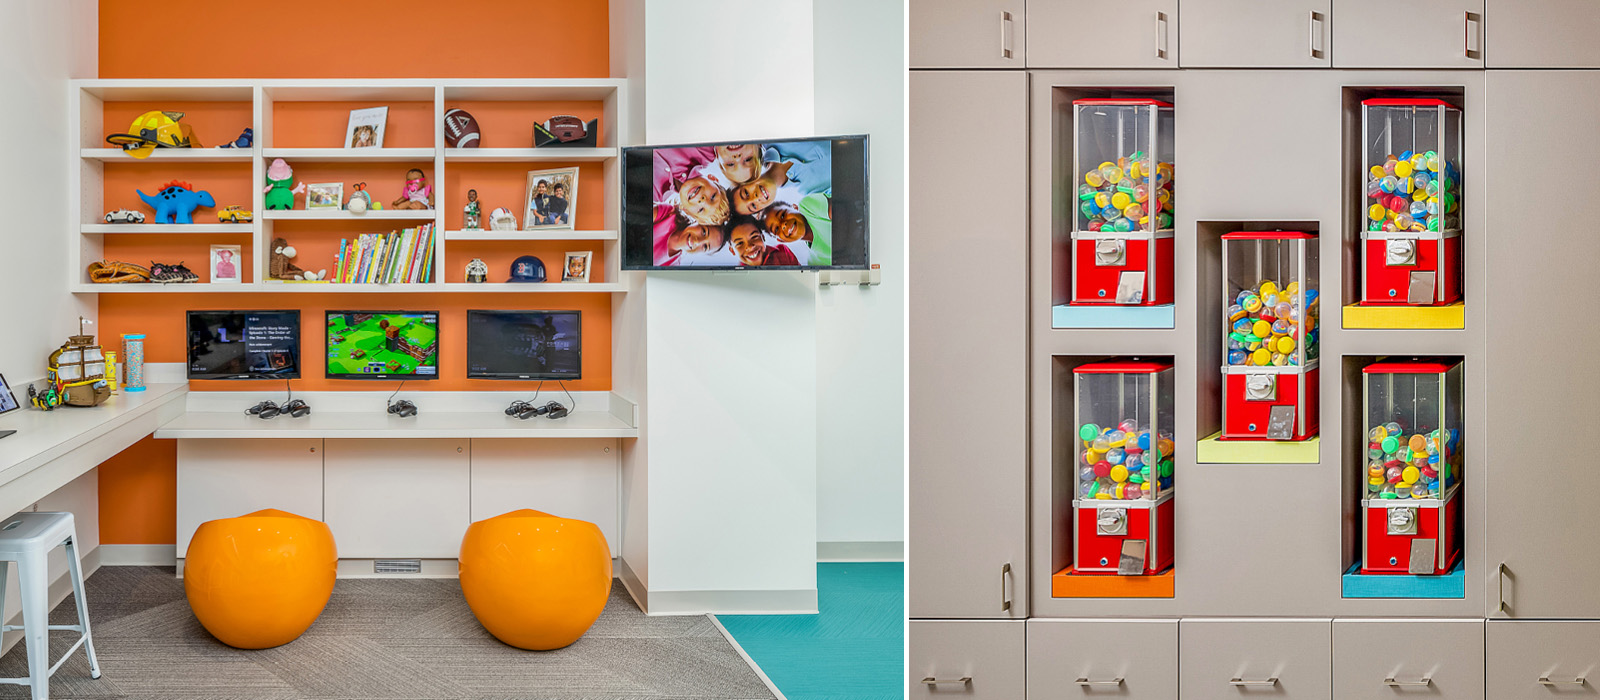 Sprout Dental video game stations and prize center